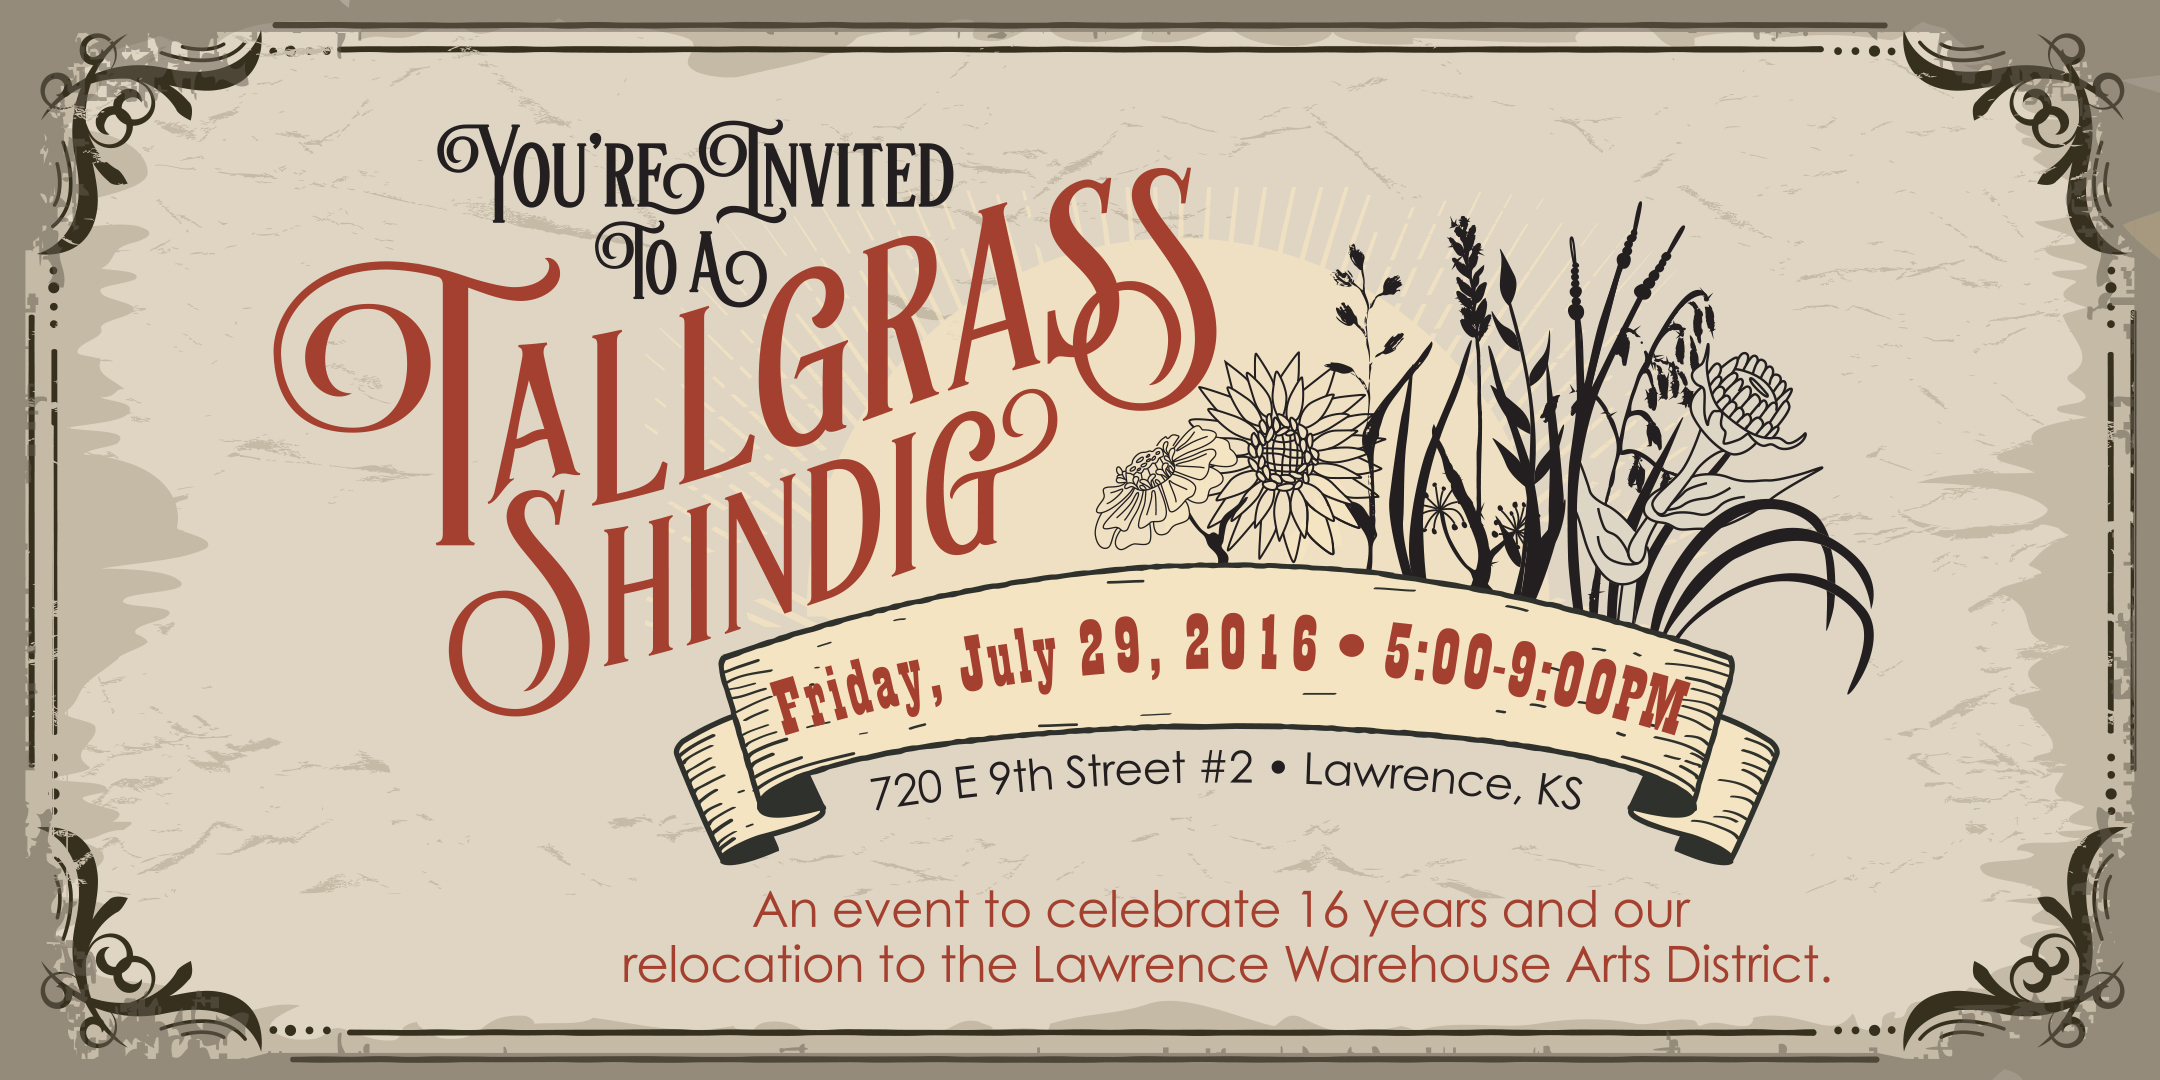 Tallgrass Shindig